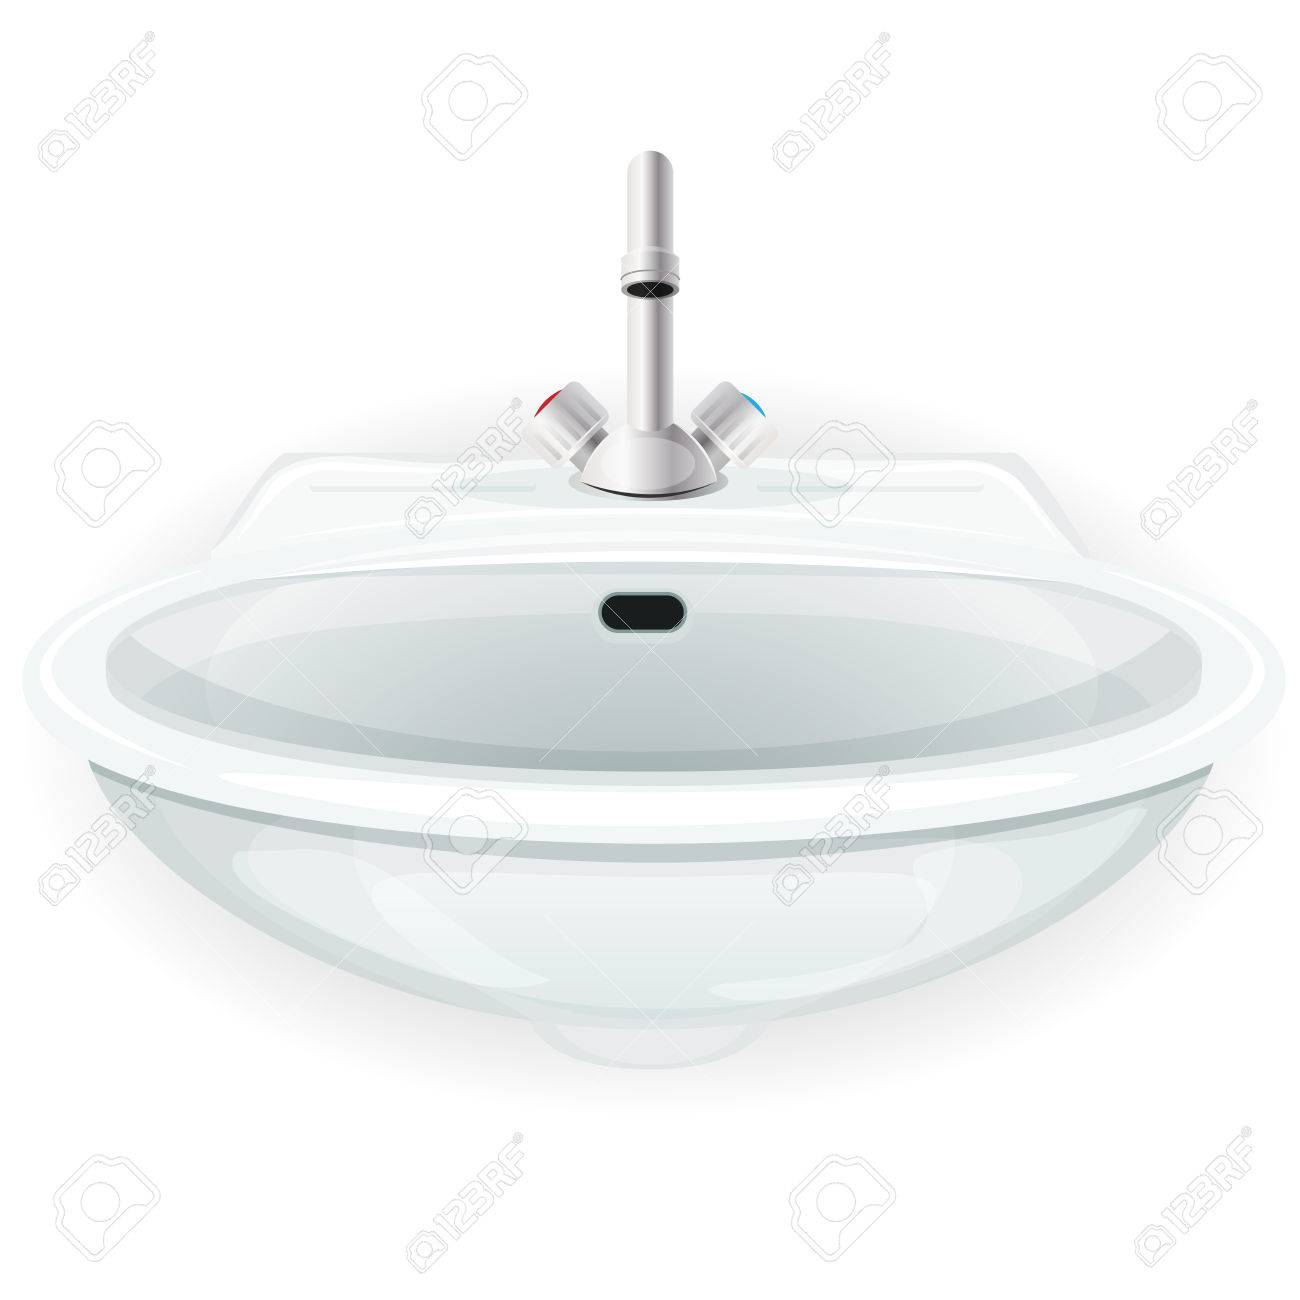 Illustration Of A White Cartoon Domestic Home Sink, With Tap ...